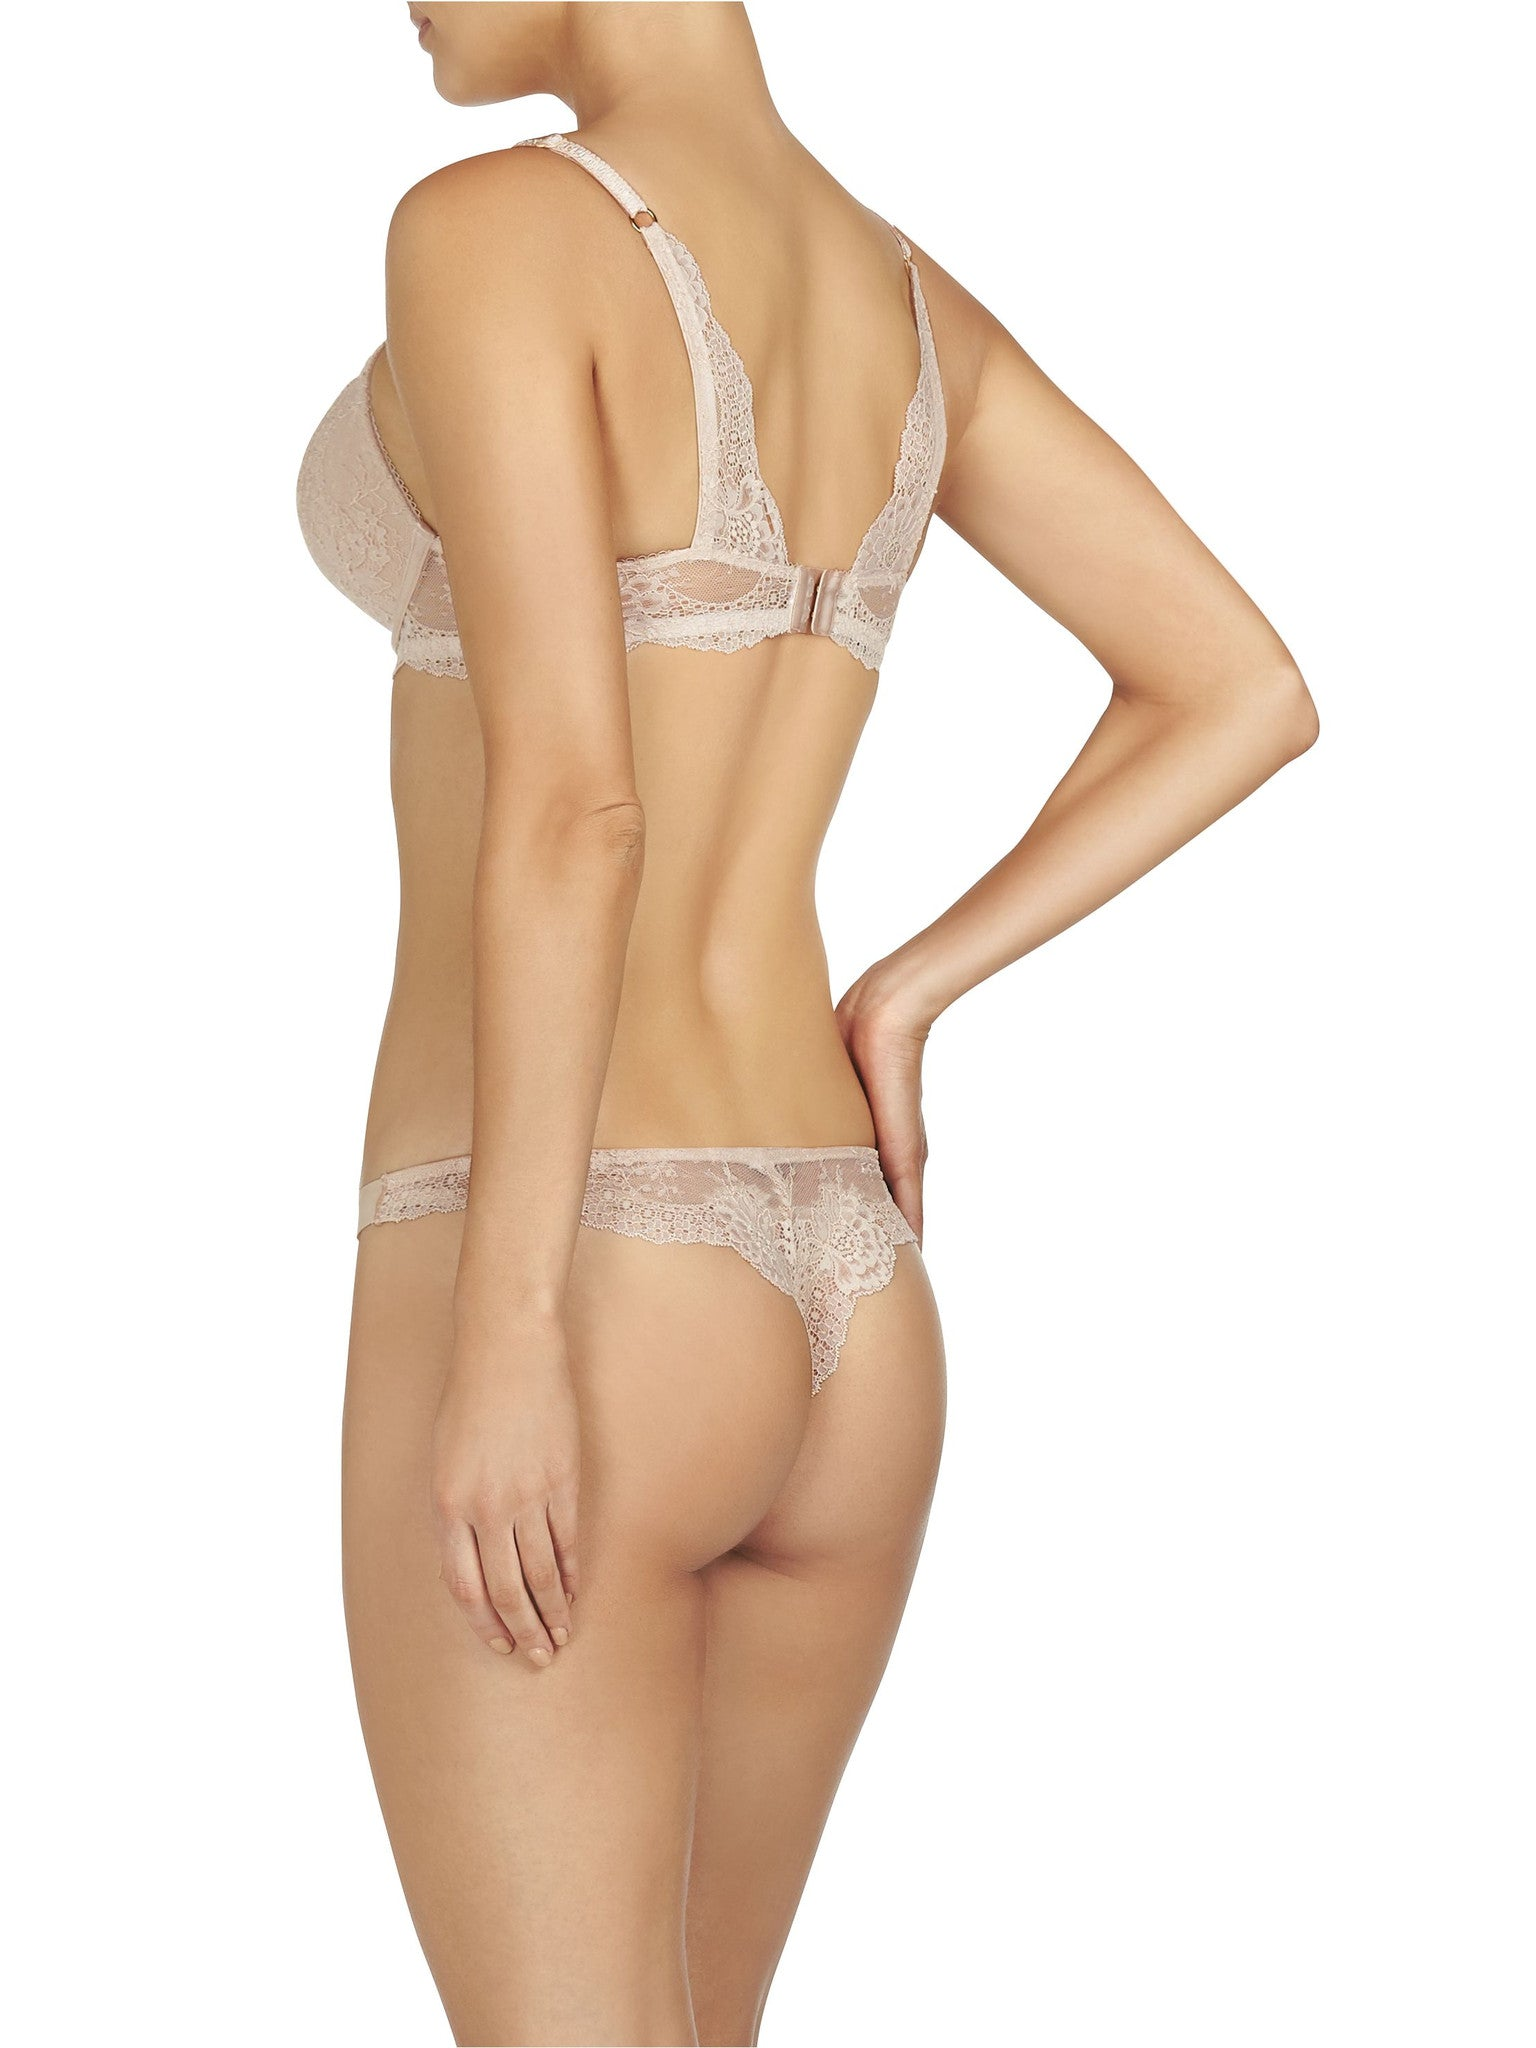 Stella McCartney Lingerie New Stella Smooth & Lace Bra-Contour Plunge - Knickers & Pearls Boutique - 3